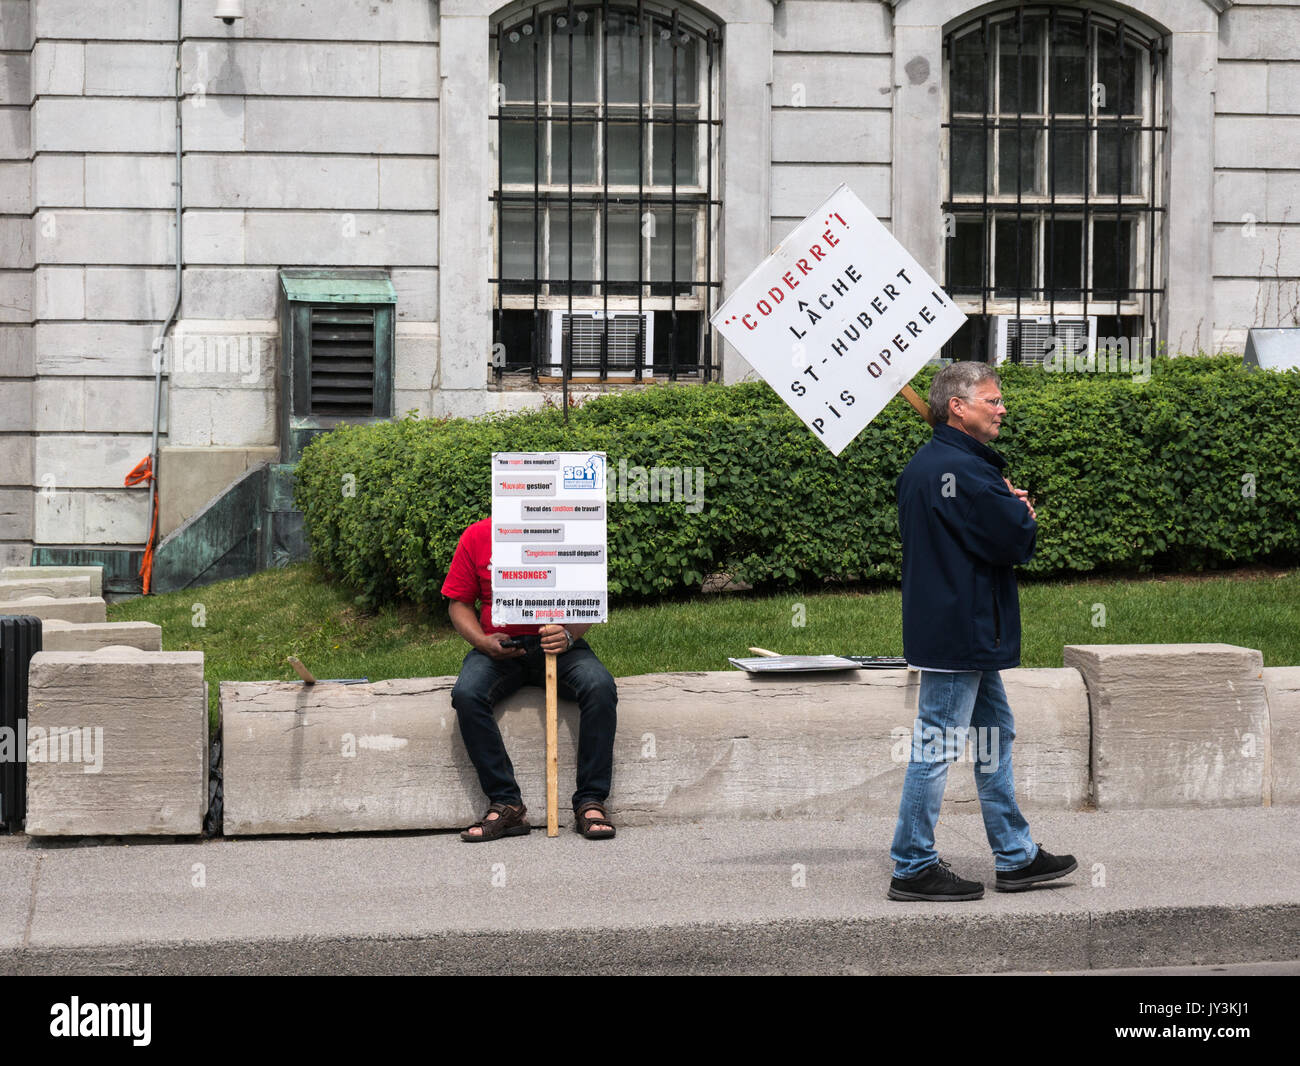 Workers protesting employer's policies. - Stock Image